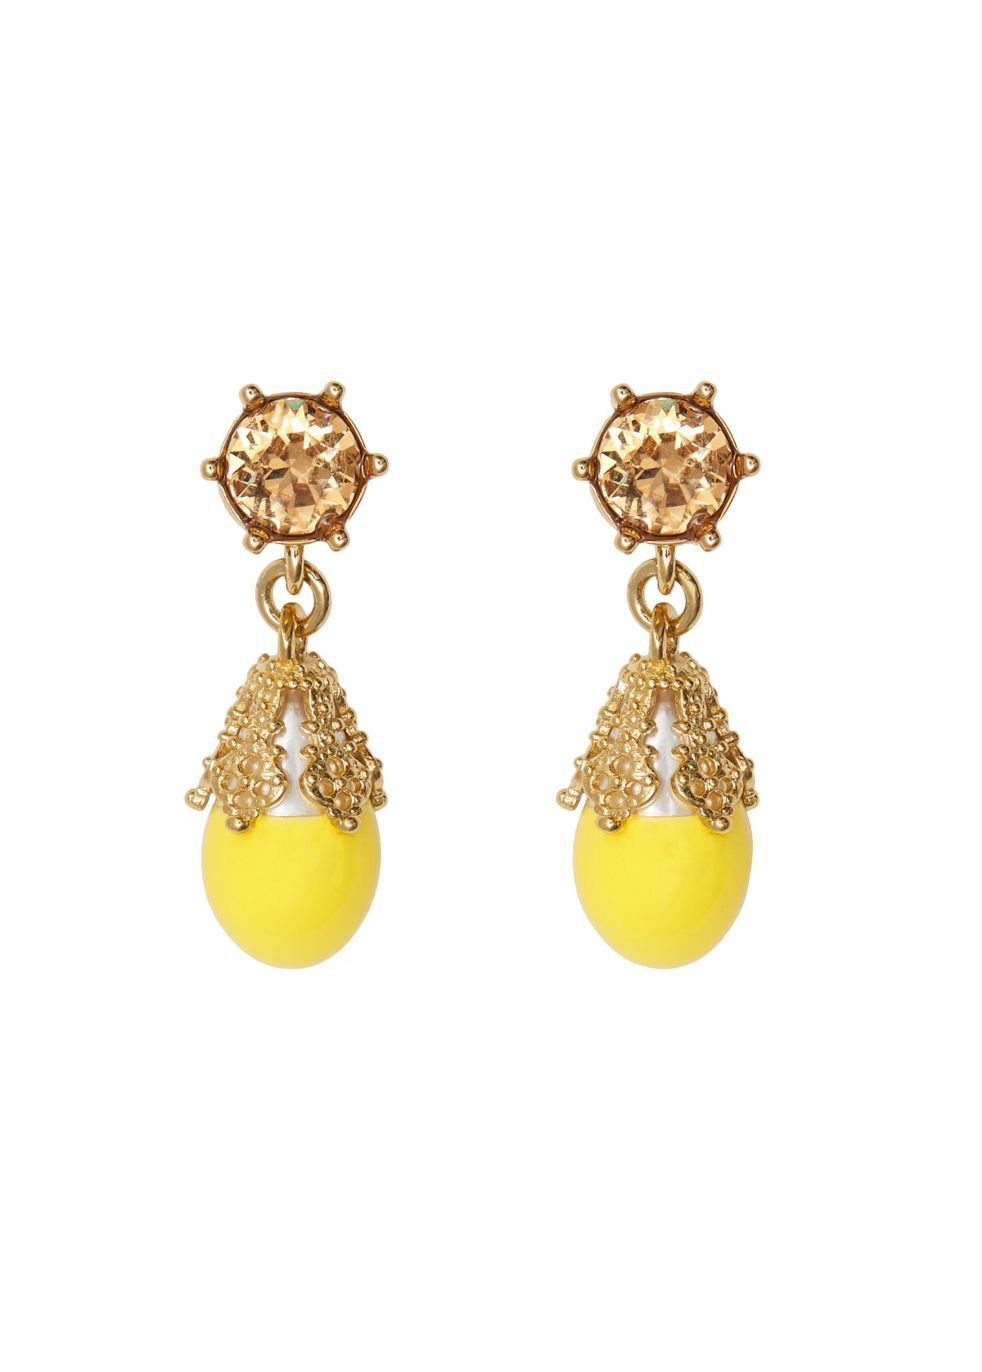 BURBERRY | Burberry Gold-Plated Faux Pearl Charm Earrings | Goxip